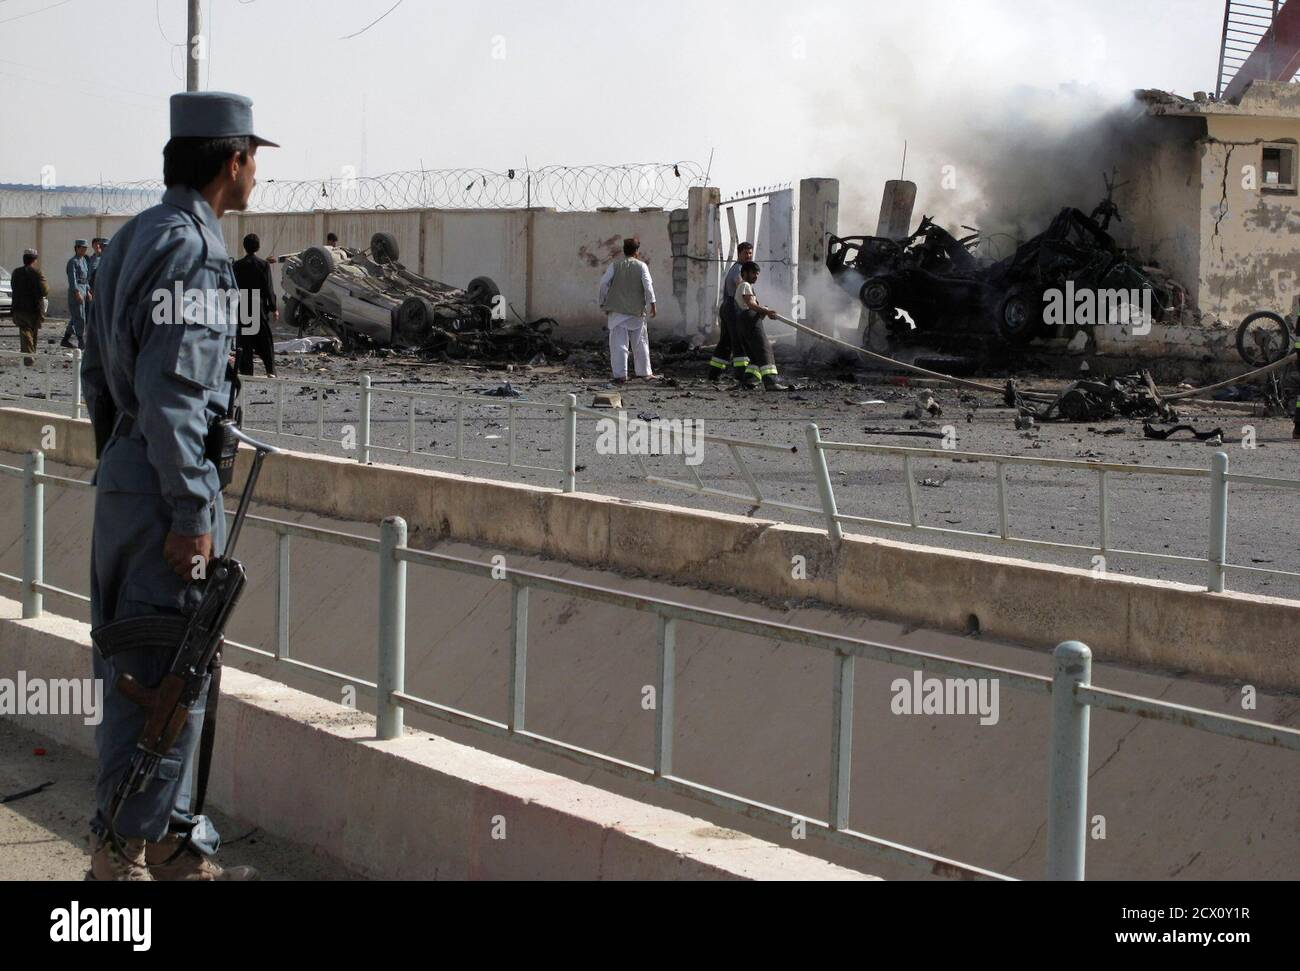 An Afghan policeman (L) watches as firefighters work at the site after a car bomb explosion in Lashkar Gah, capital of Helmand province July 31, 2011. The explosion killed at least six Afghan police in the southern city of Lashkar Gah on Sunday, said a spokesman for the Helmand provincial governor.  REUTERS/Abdul Malik Watanyar (AFGHANISTAN - Tags: CIVIL UNREST IMAGES OF THE DAY) Stock Photo